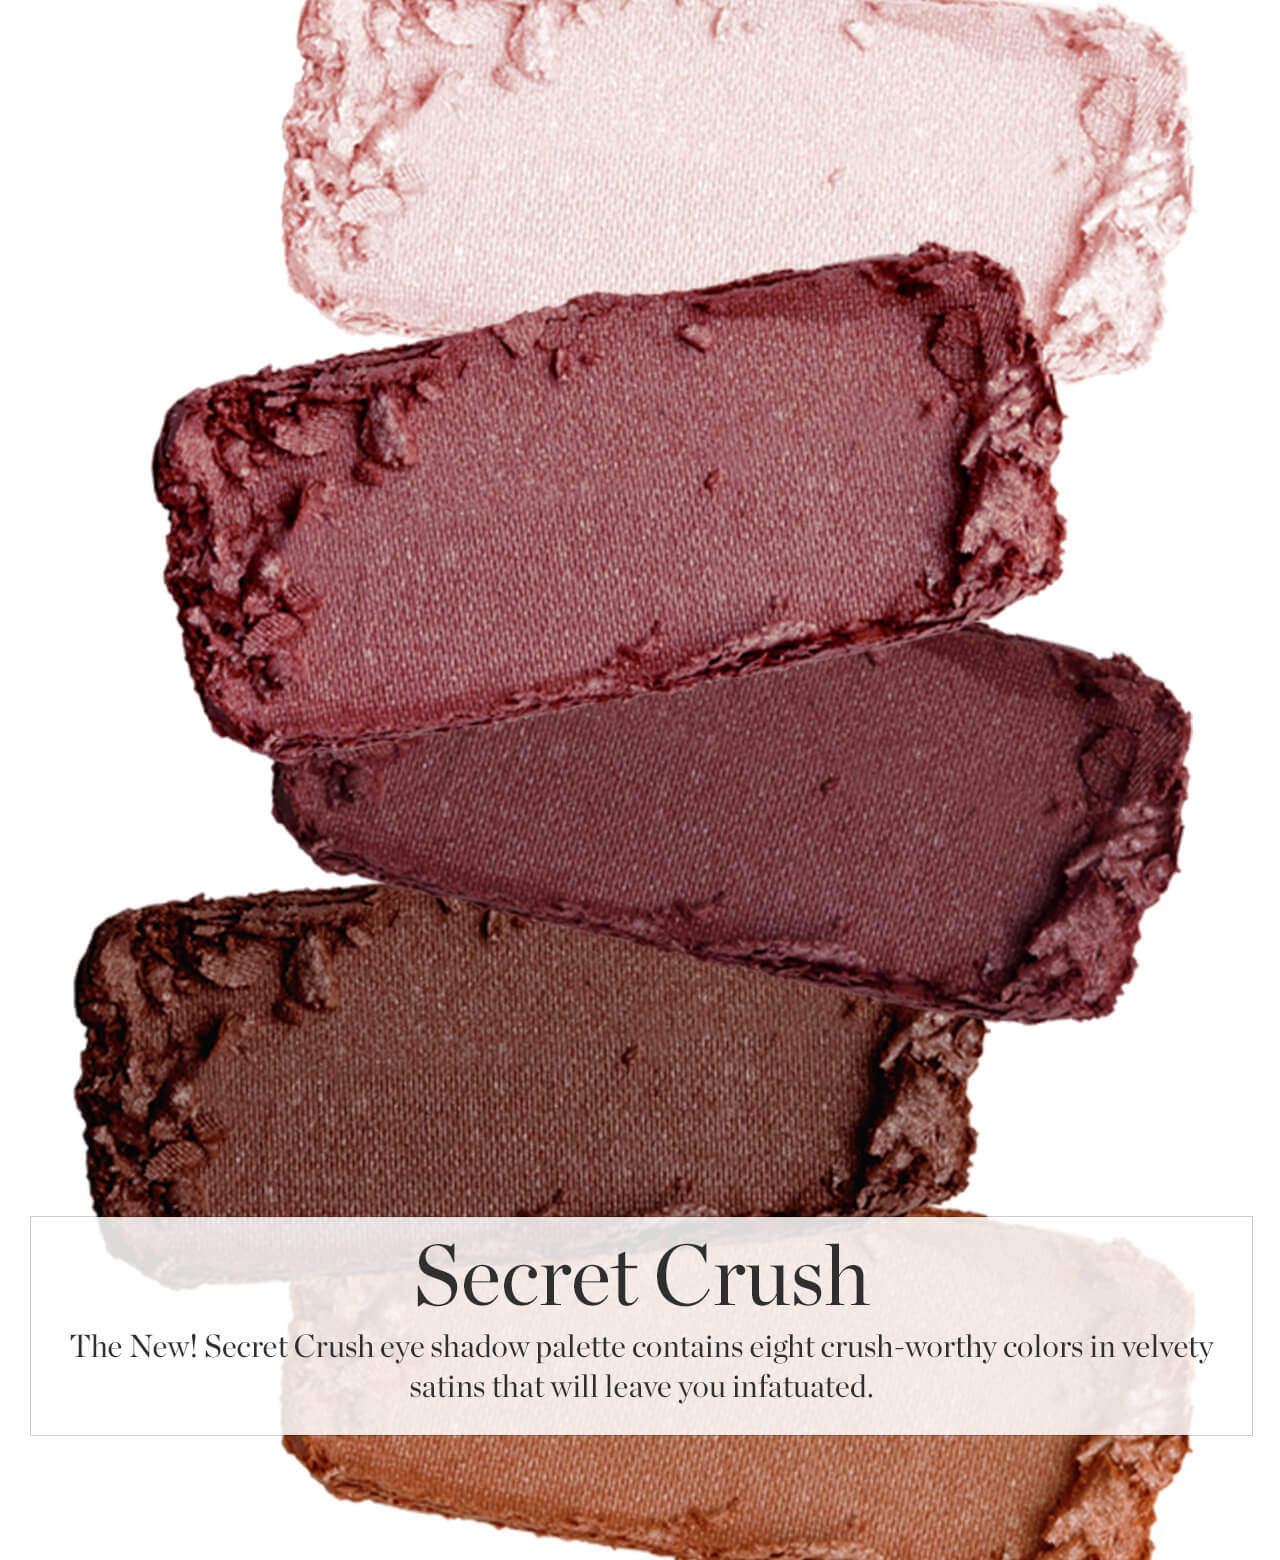 Secret Crush